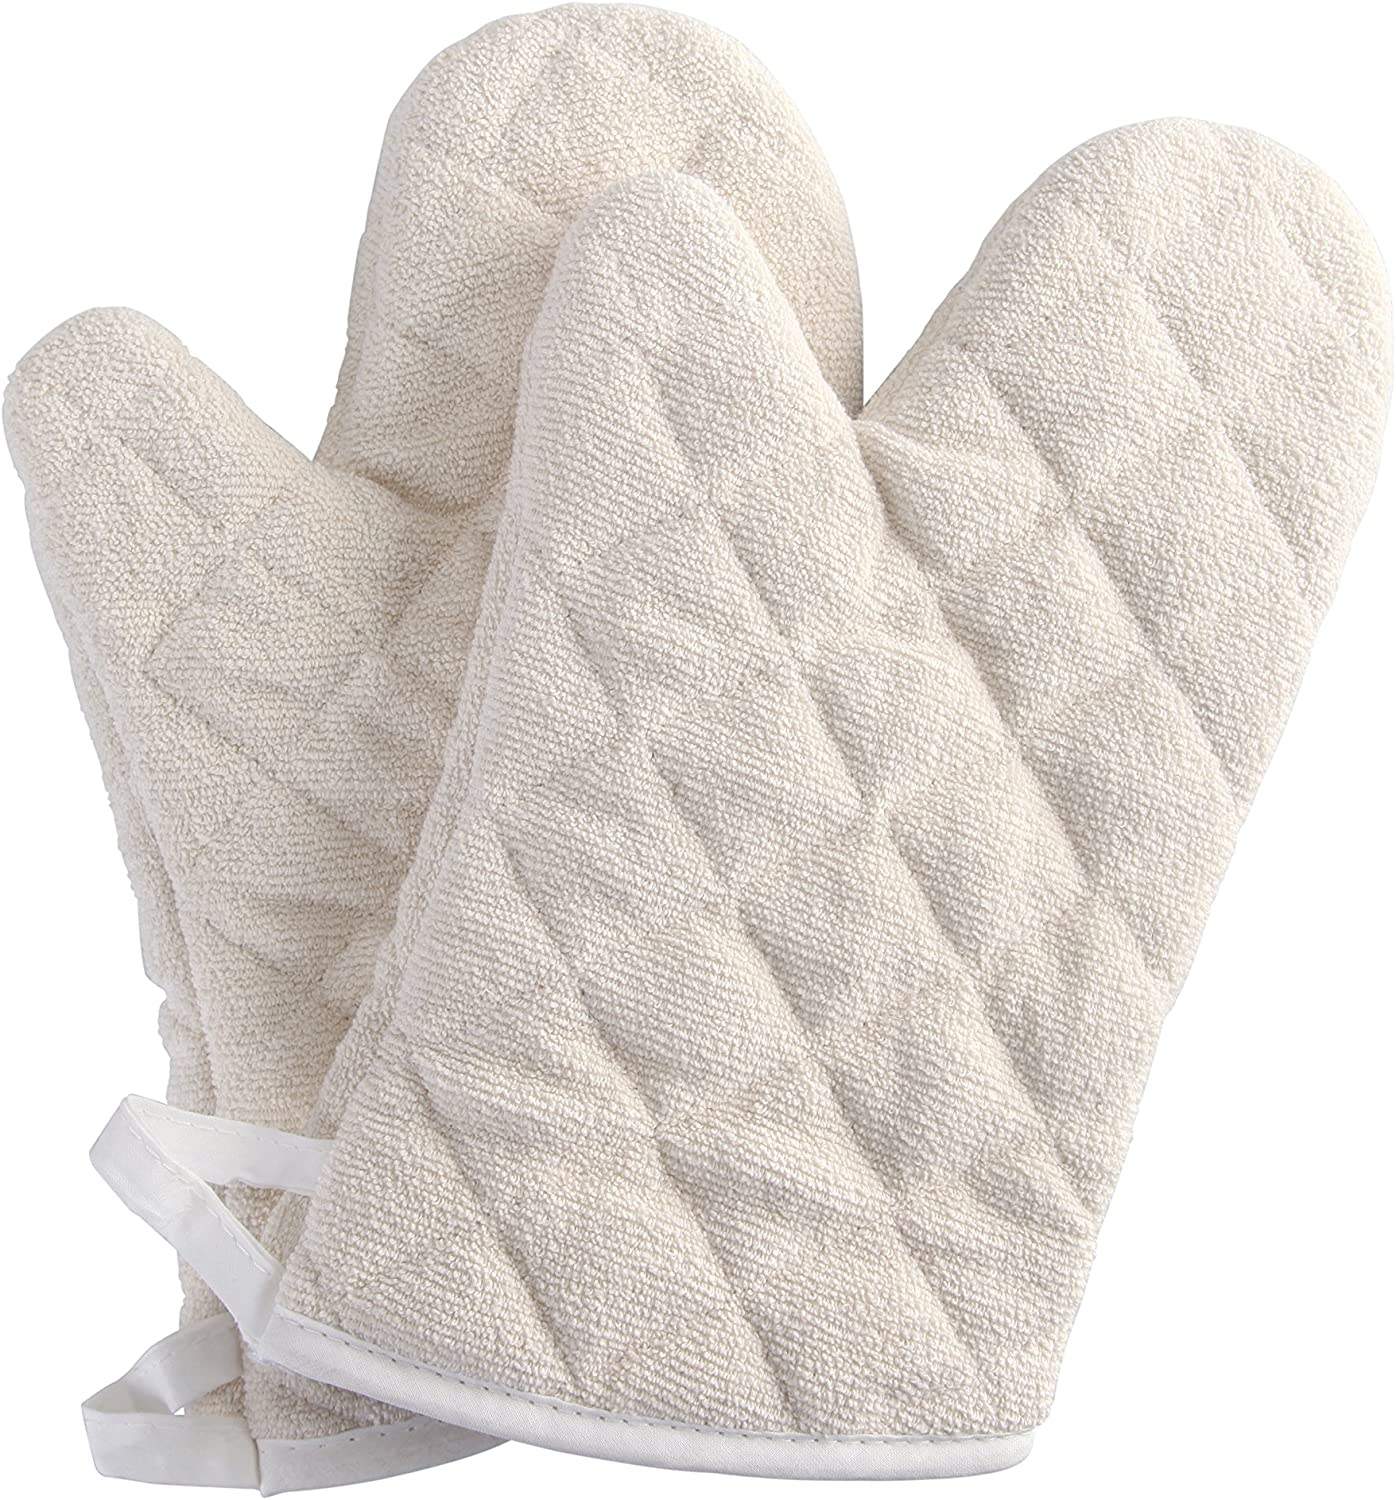 Terry Cloth Oven Mitts Heat Resistant to 482° F 13 Inch 100% Cotton Set of 2